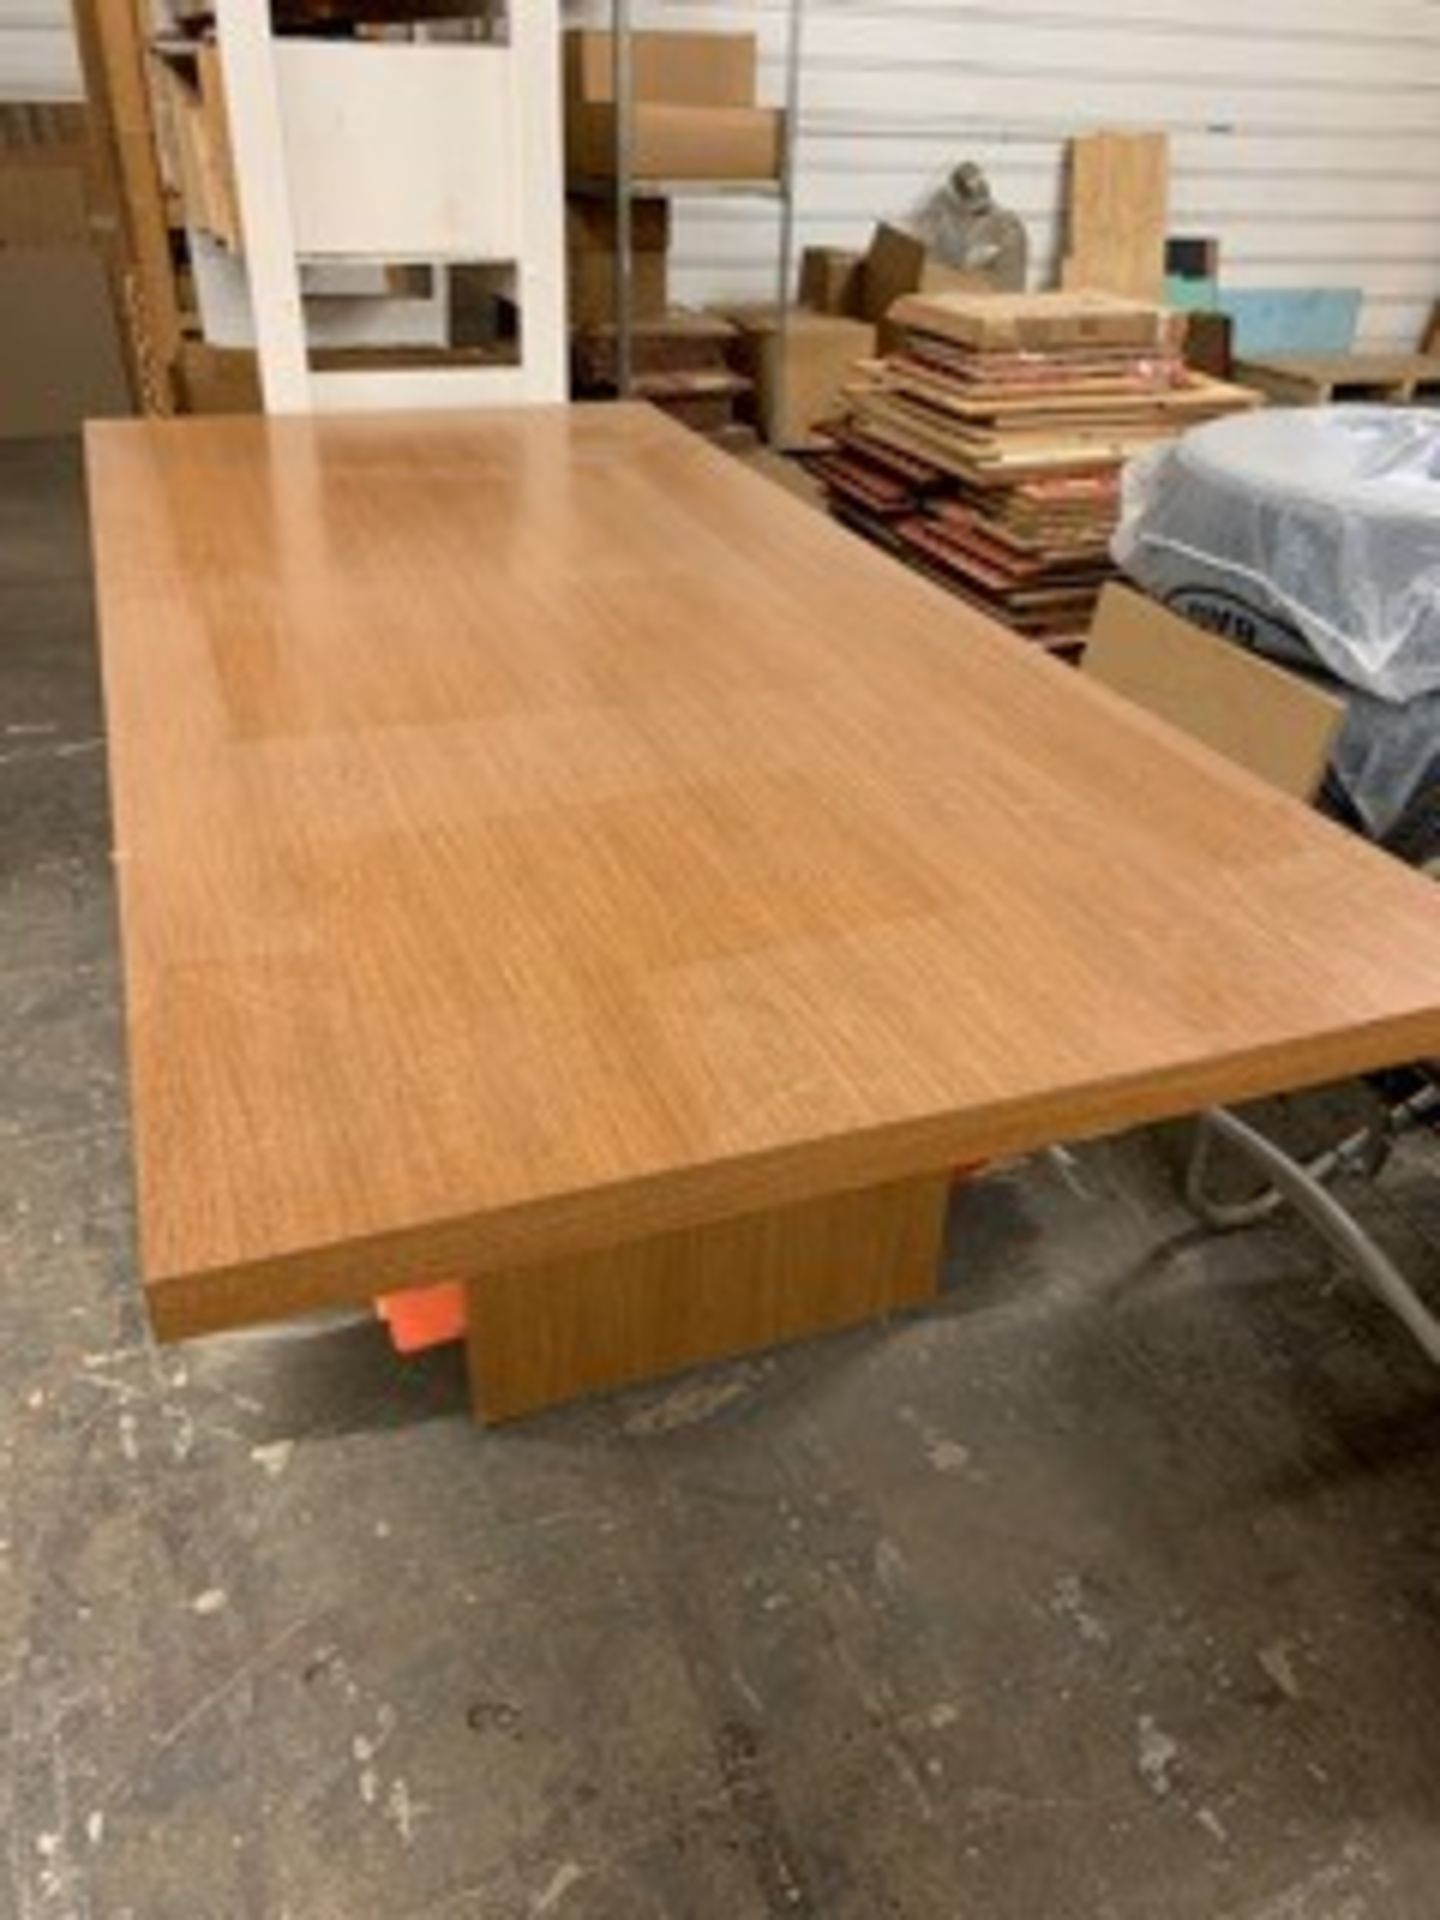 Lot 5064 - 8 FT. CONFERENCE TABLE (LOCATED AT: 16335 LIMA ROAD, HUNTERTOWN, IN 46748)